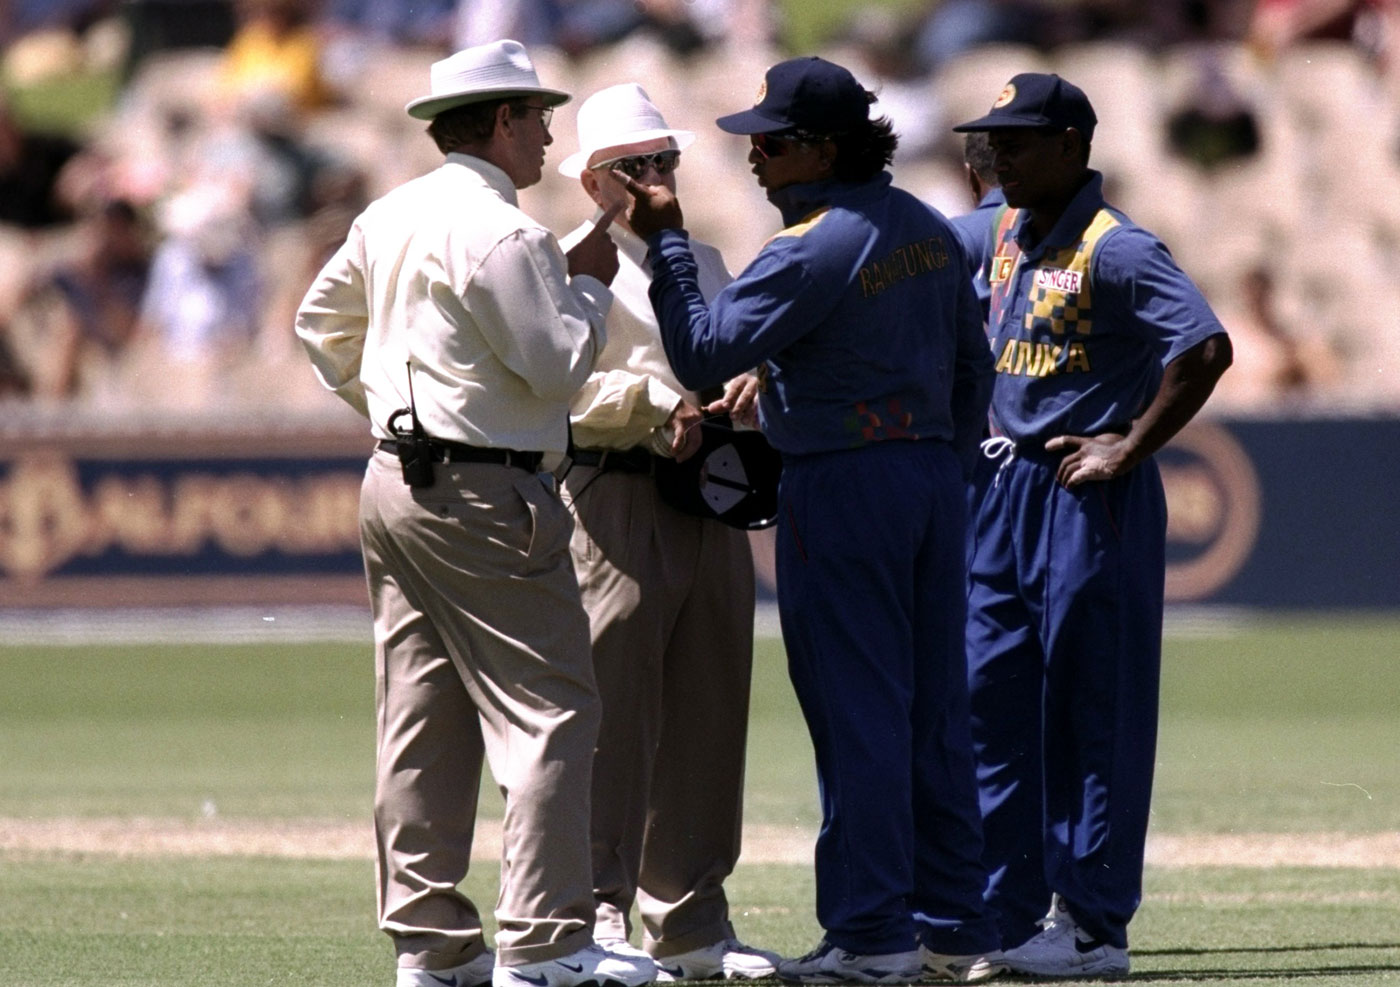 5 Instances When Teams Protested Against Umpiring Decisions